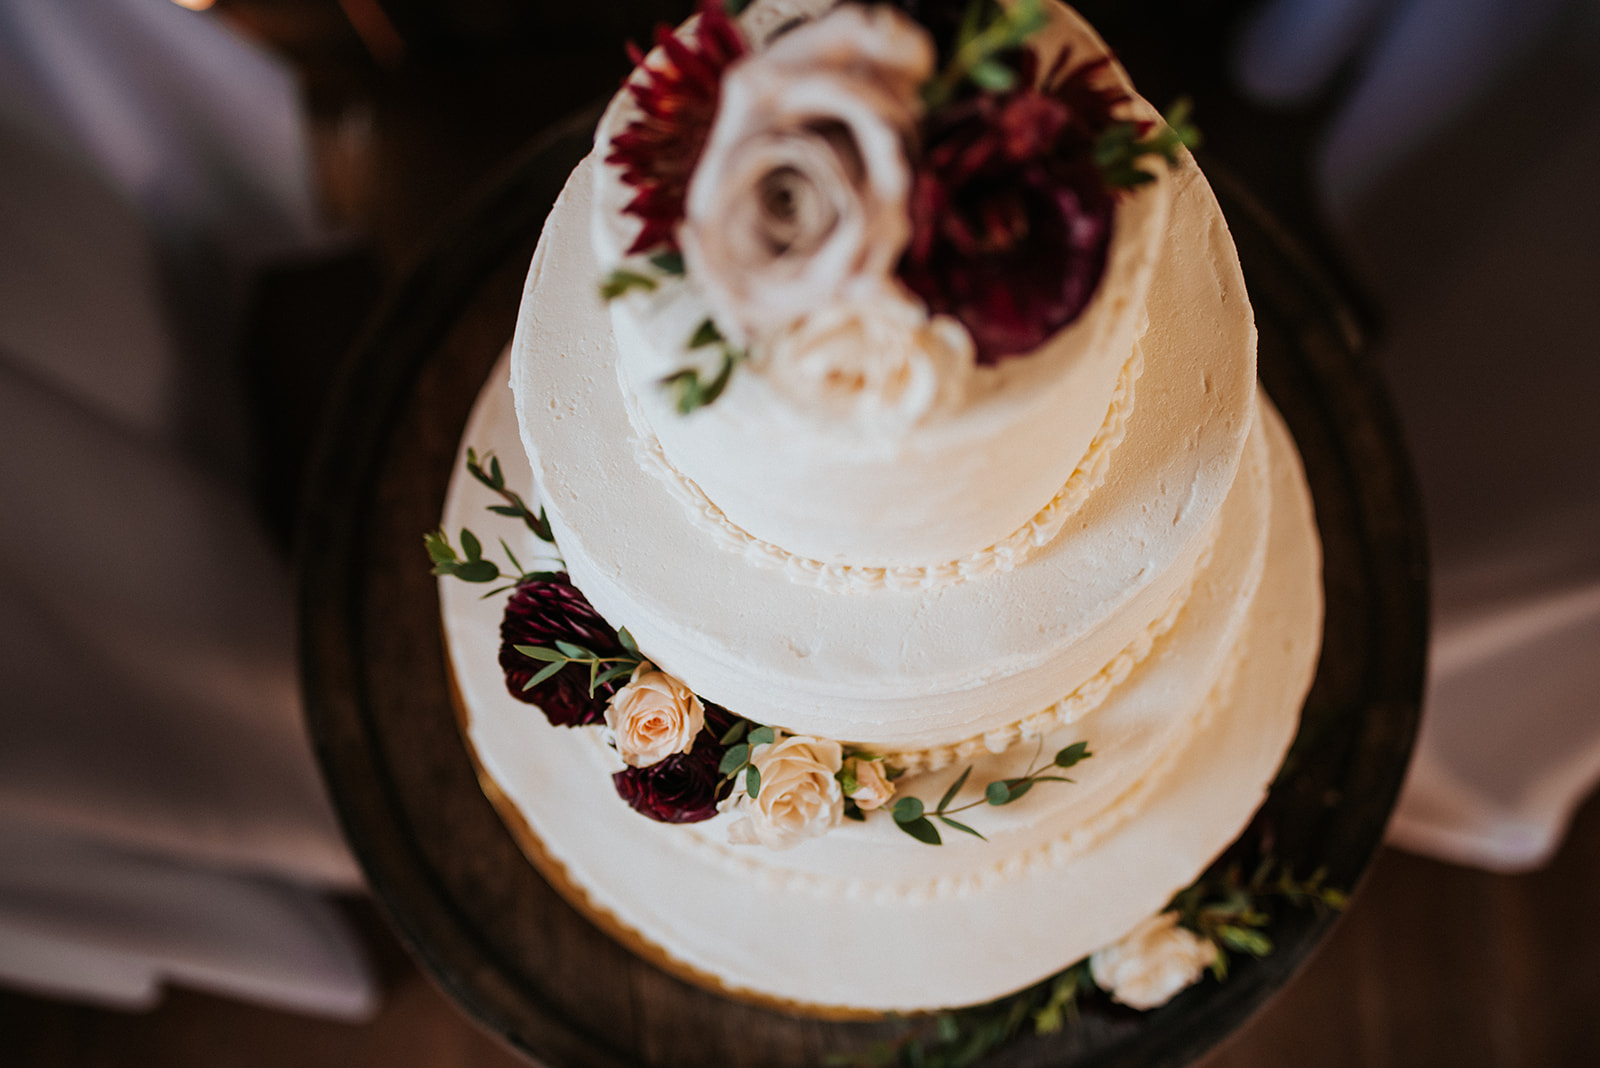 overthevineswisconsinwedding_1174.jpg